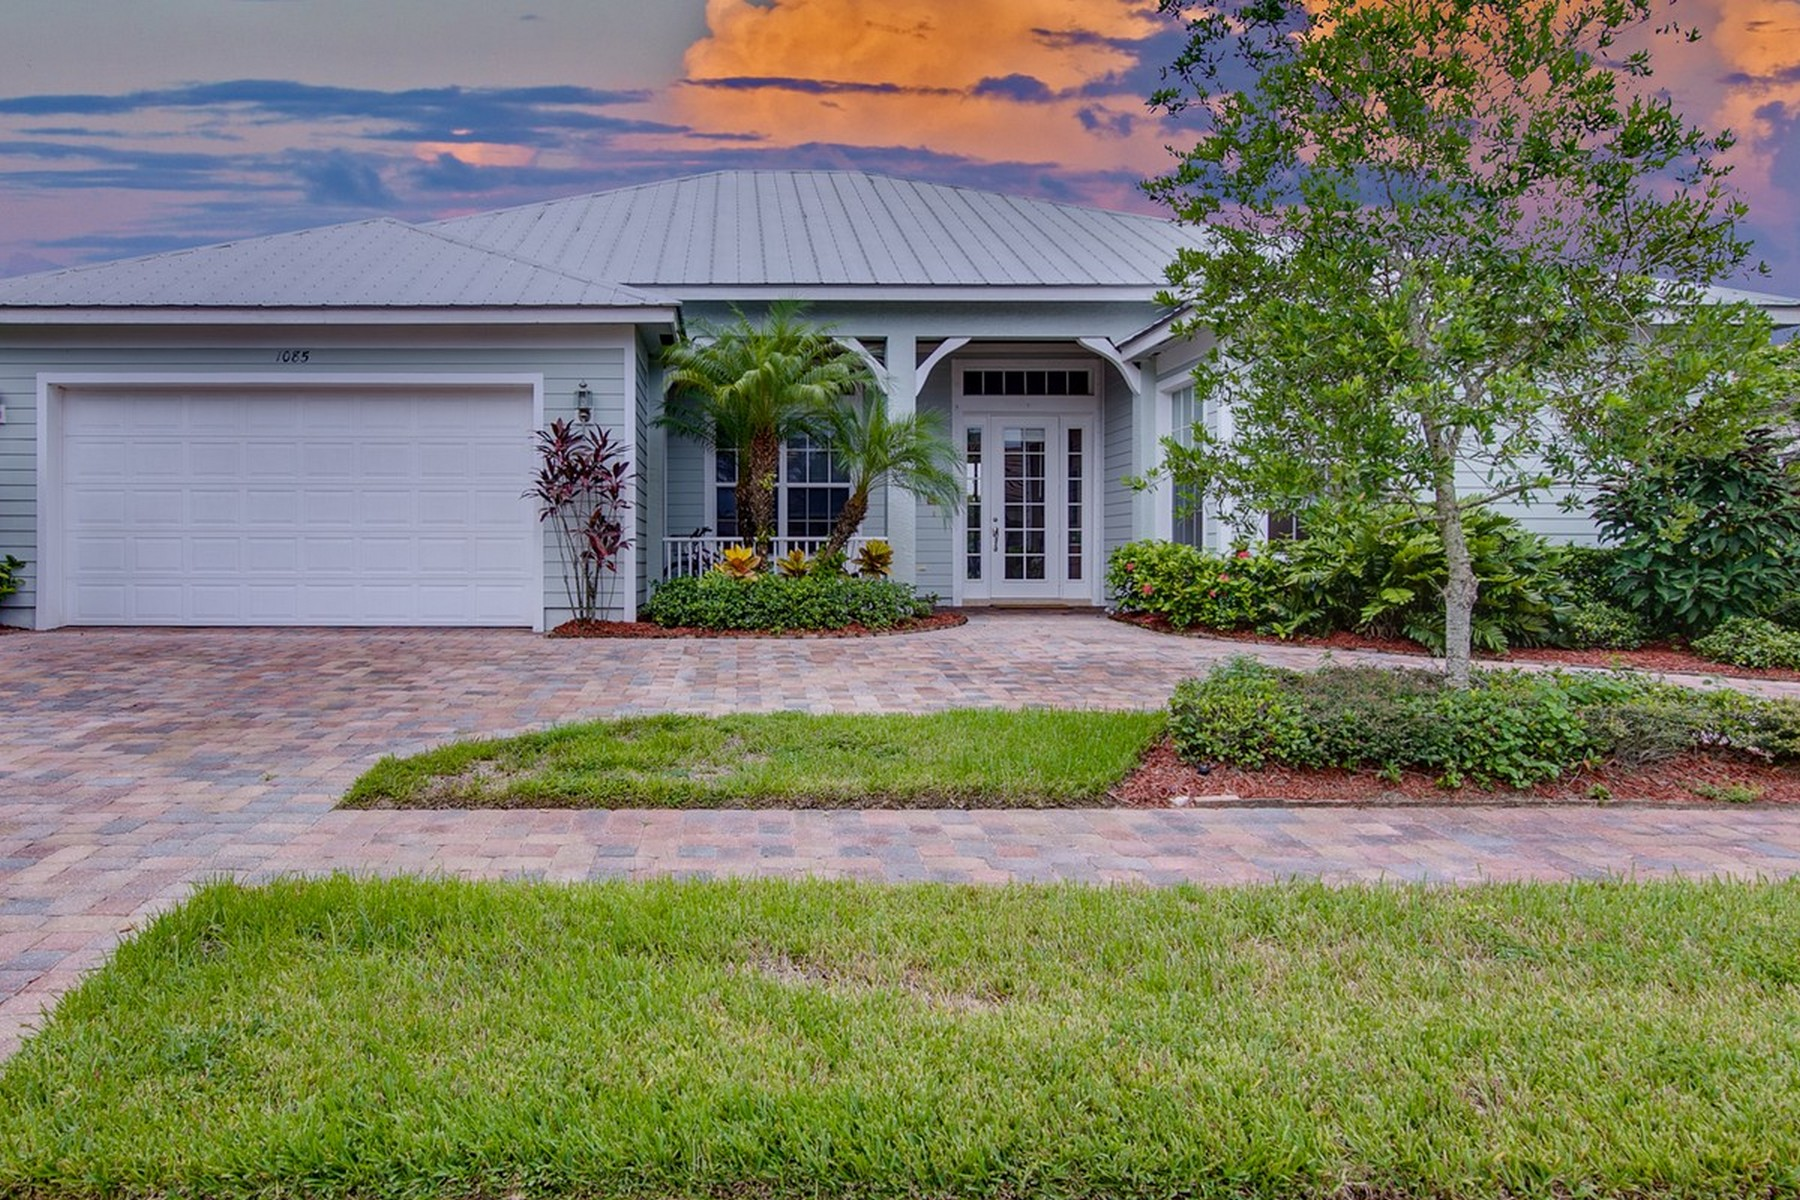 Single Family Home for Sale at Beautiful Ansley Park Home 1085 Buckhead Drive SW Vero Beach, Florida, 32968 United States